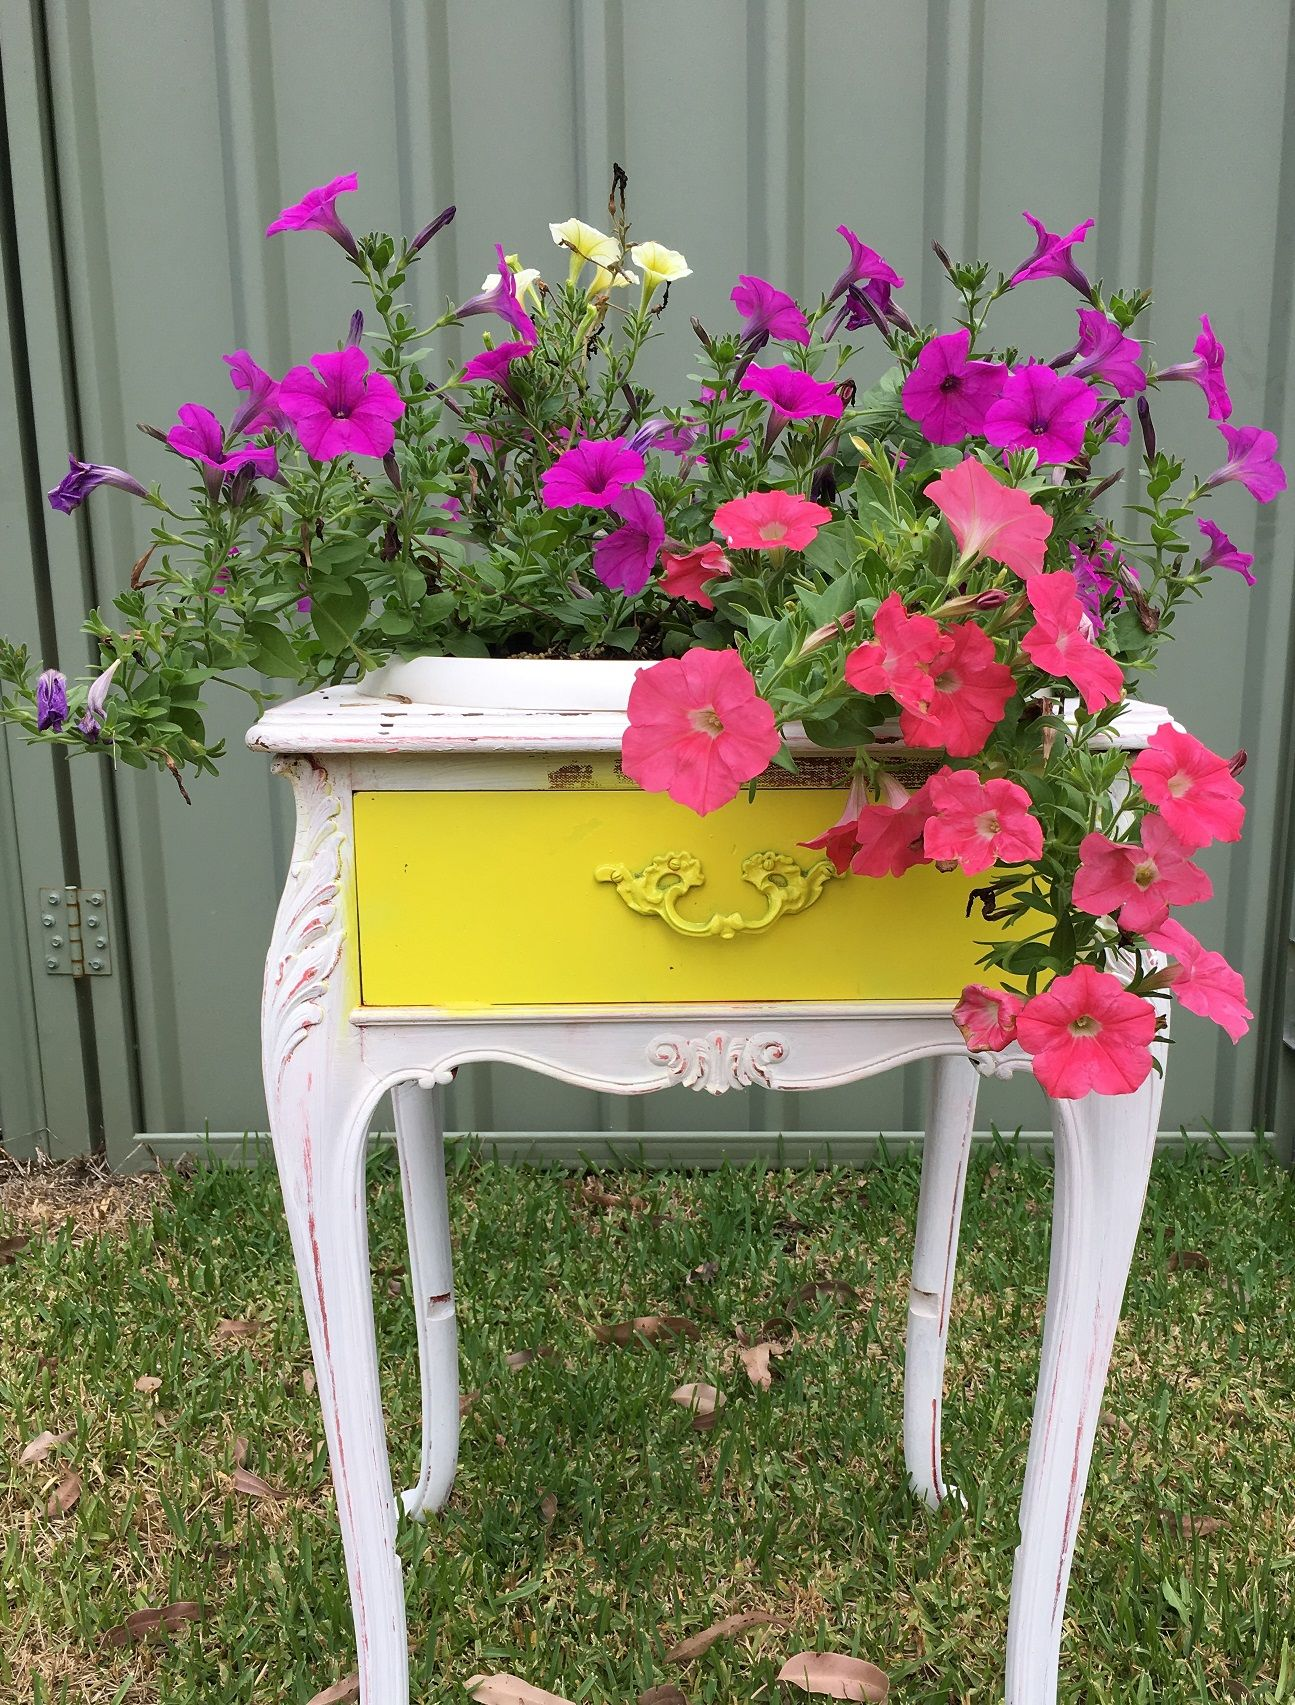 Stool Bedside Table: Up-cycled Old Bedside Table Into Planter